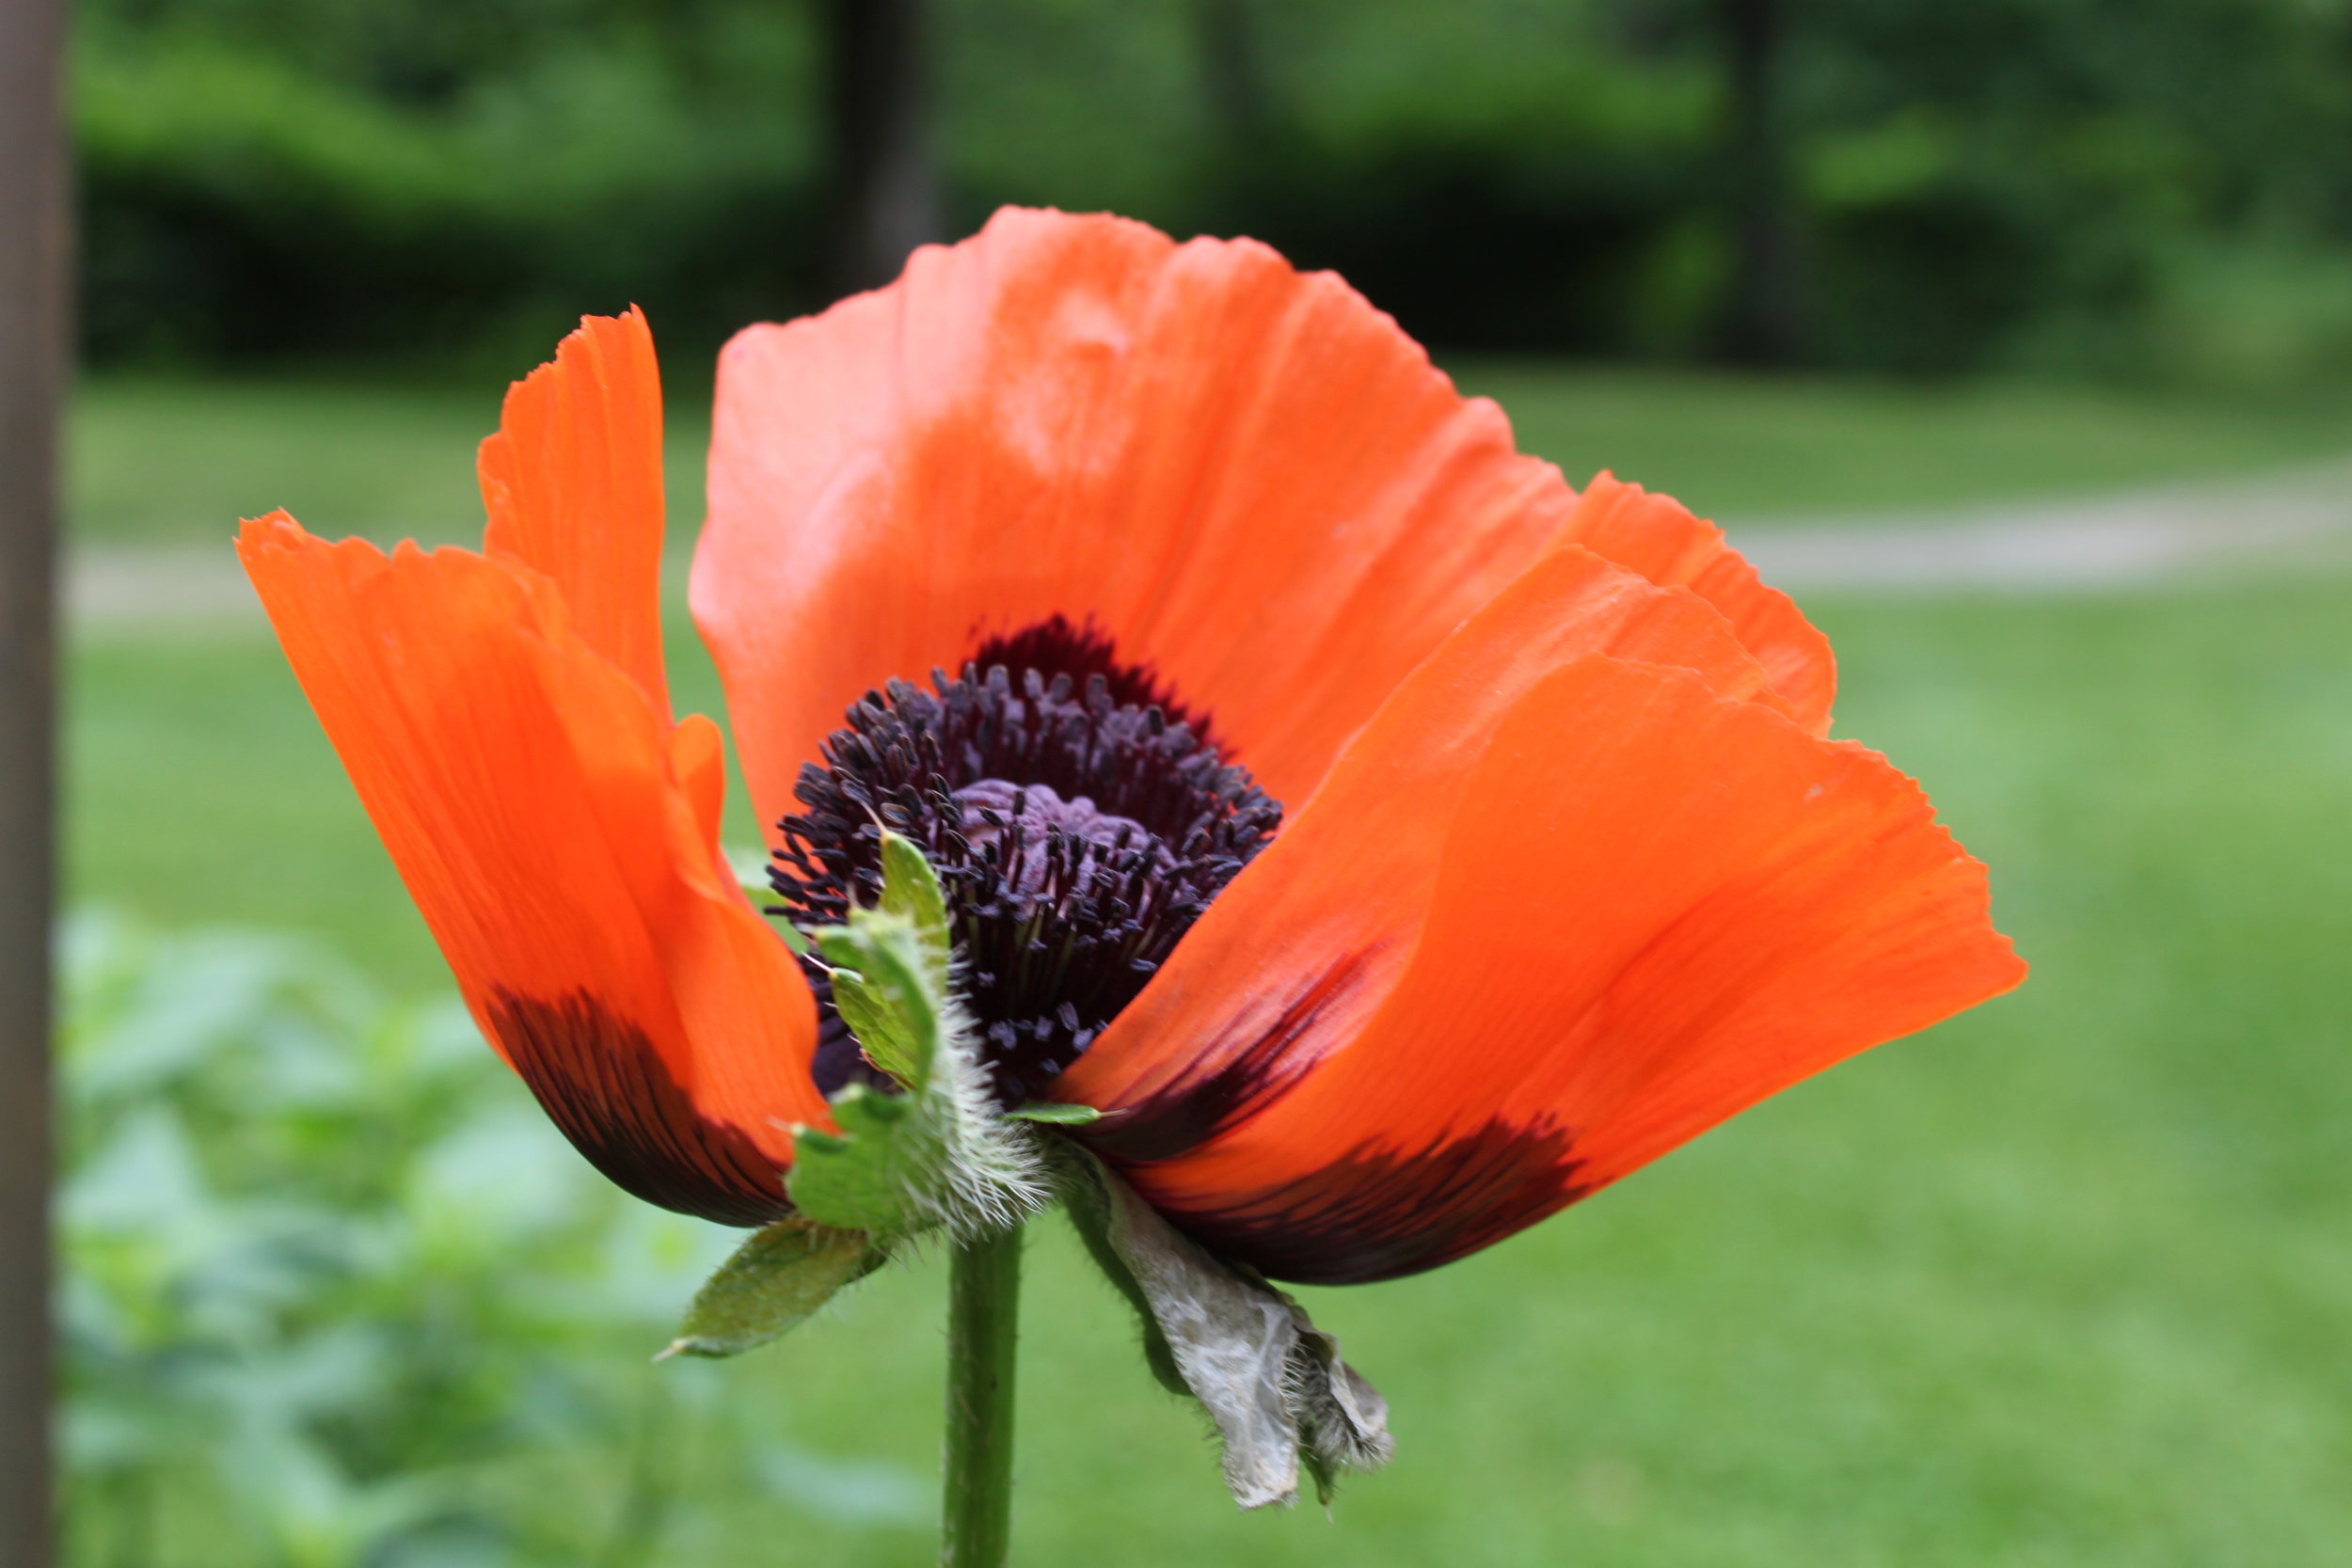 Poppies in bloom at Wellnesste Lodge & Cabin Rentals in Taberg, Central NY